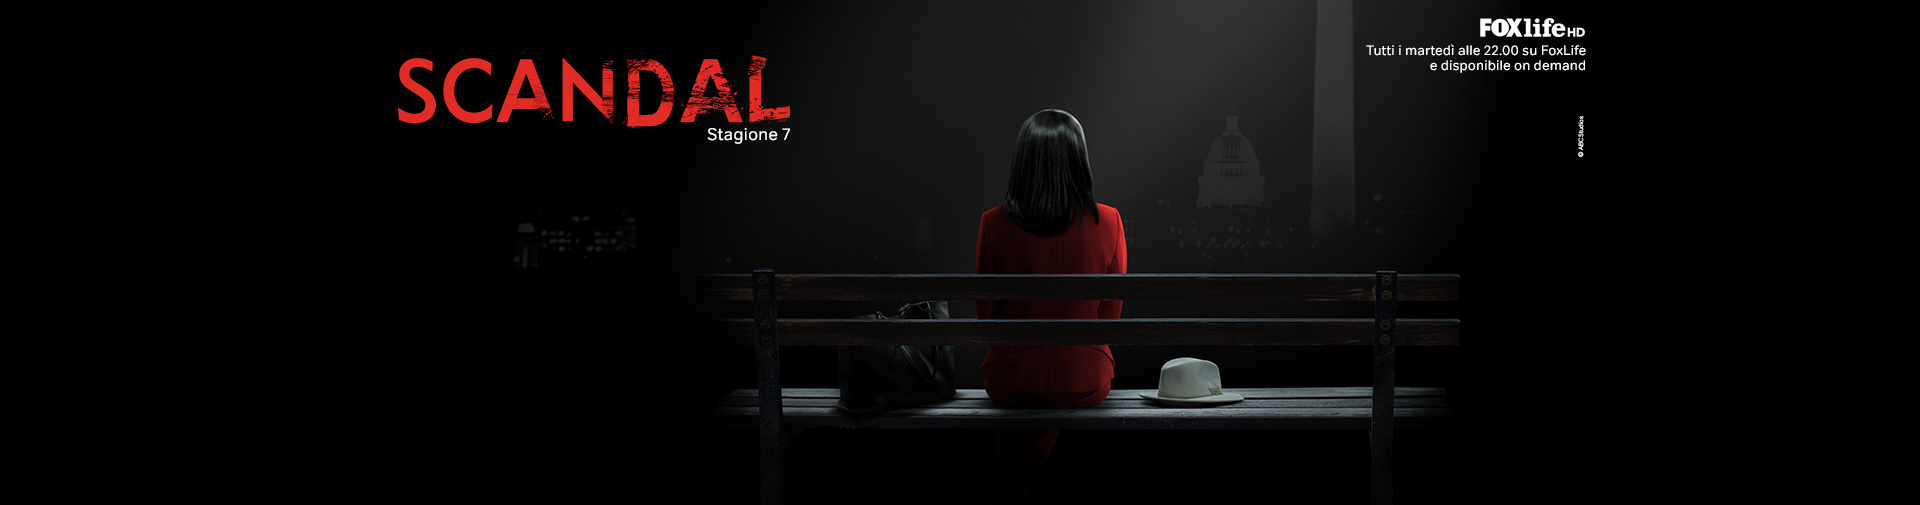 Scandal 7 TRIAL